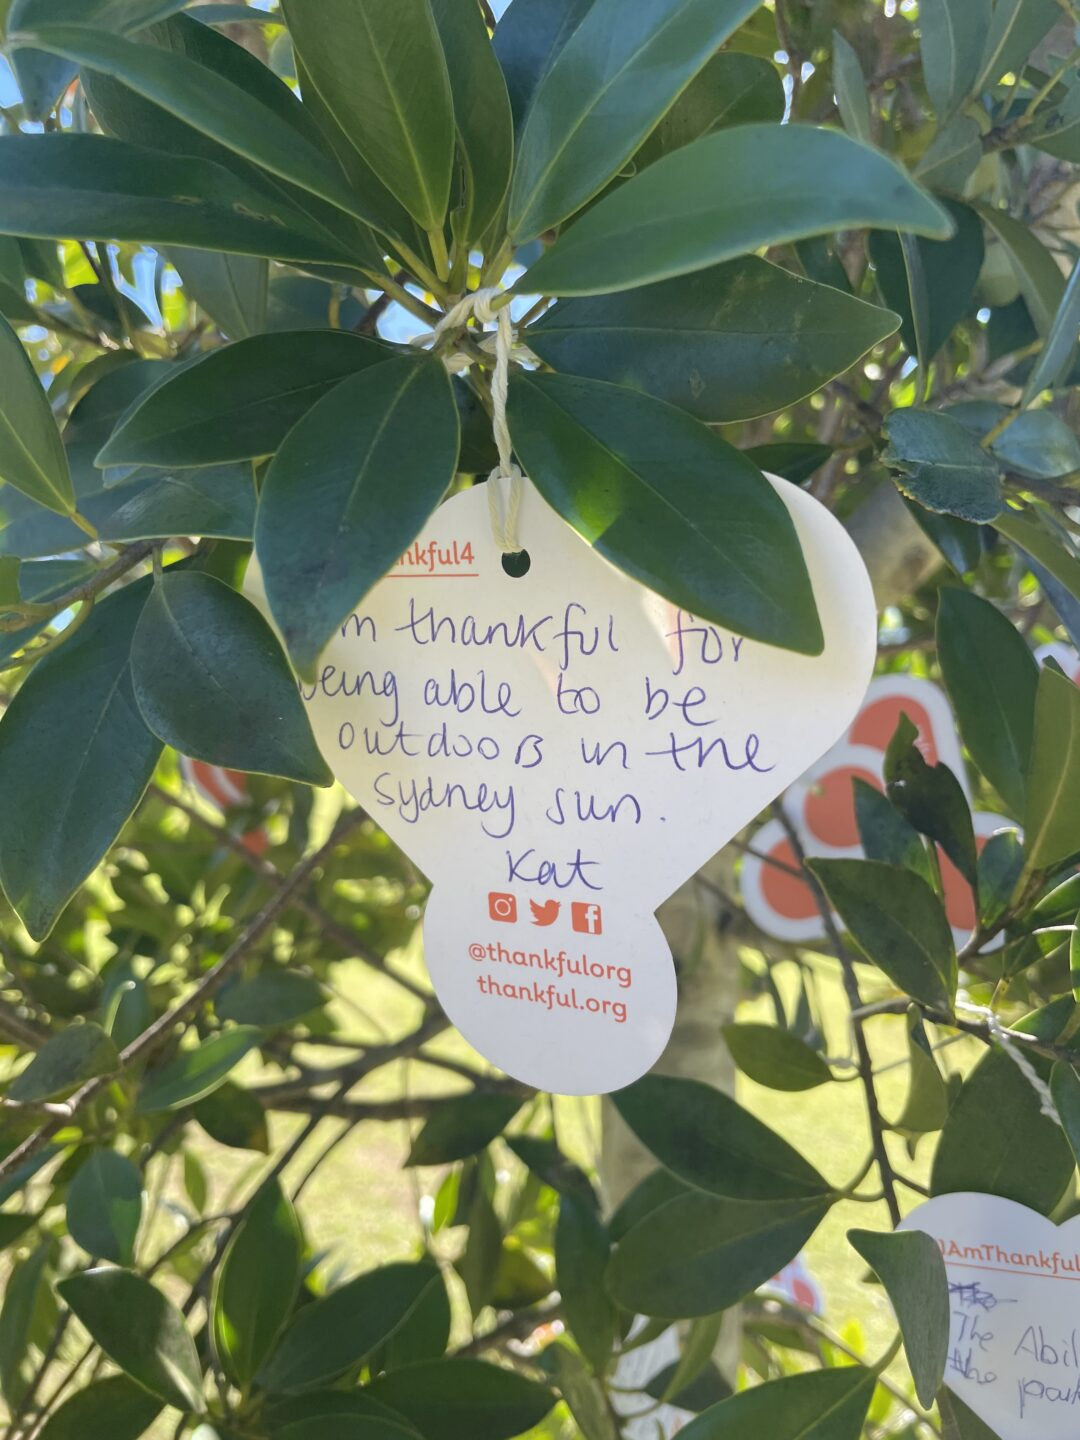 Paper message tied to tree with. Reads 'I'm thankful for being able to be outdoors in the Sydney sun'.